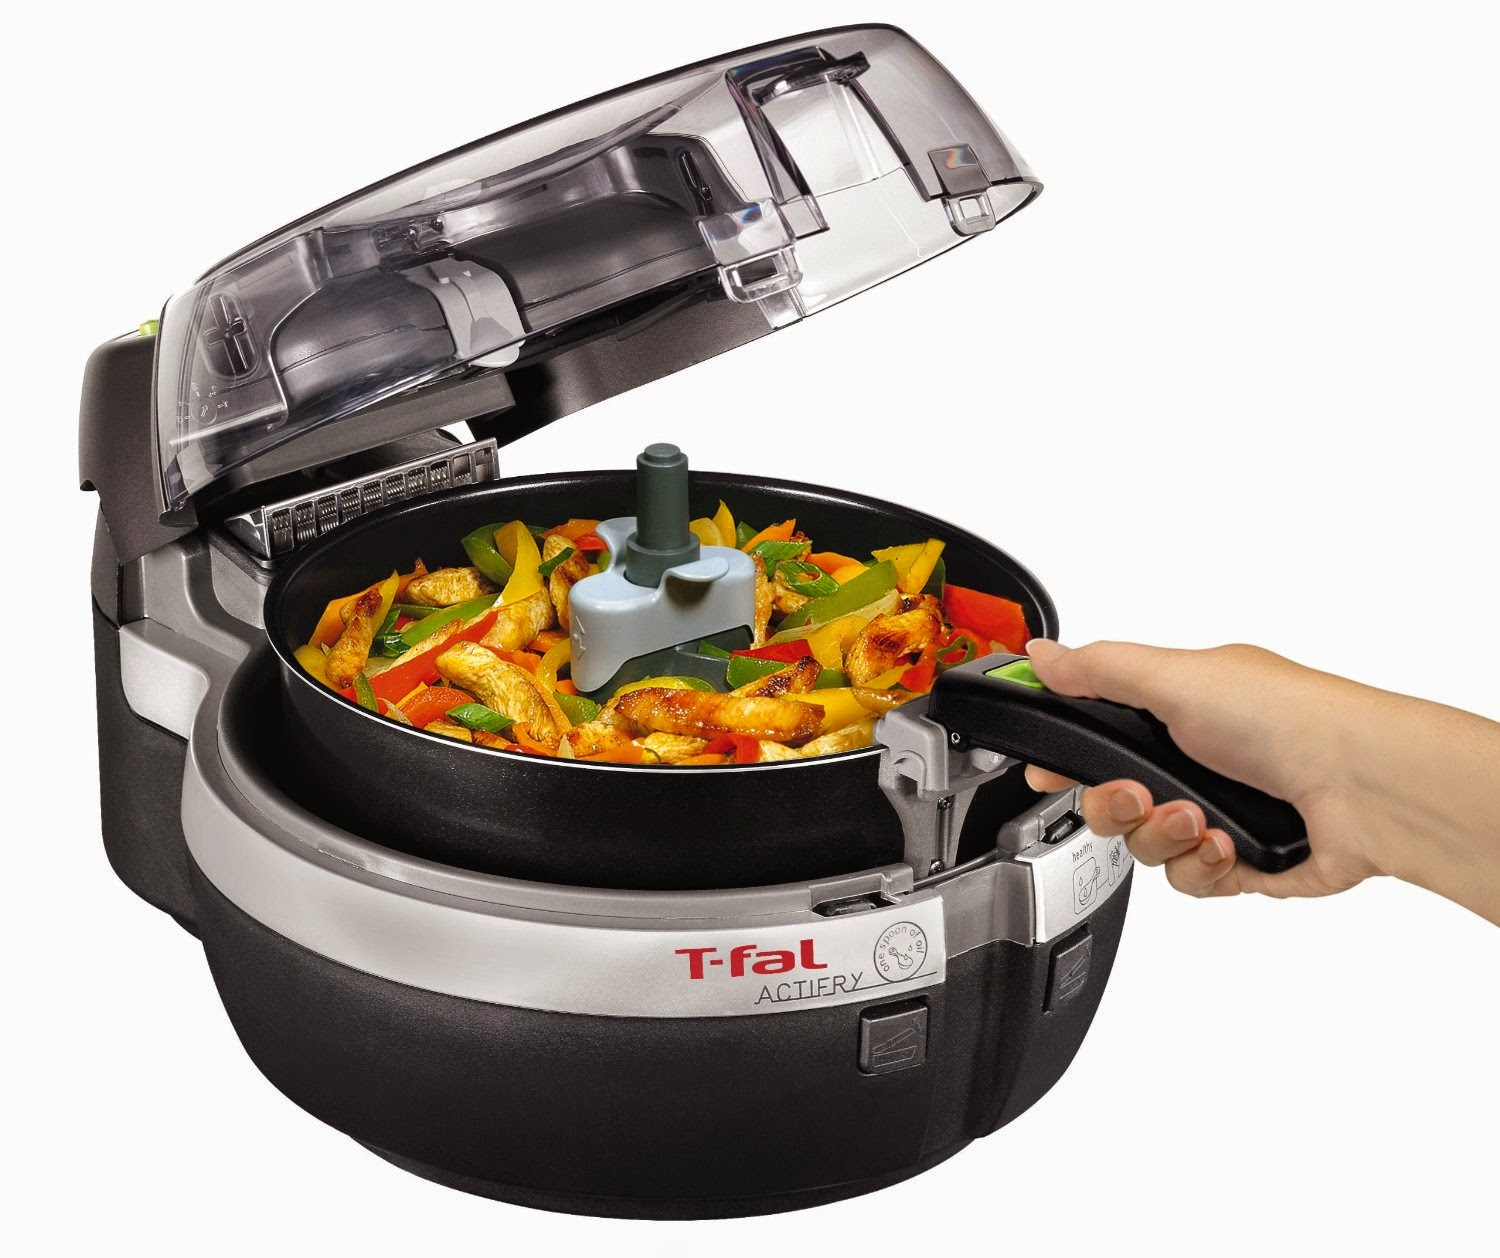 T-fal FZ700251 ActiFry Low-Fat Healthy Multi-Cooker, review, for healthy low fat cooking of meats, fish, fries, vegetables, stir-fry, risotto and even desserts